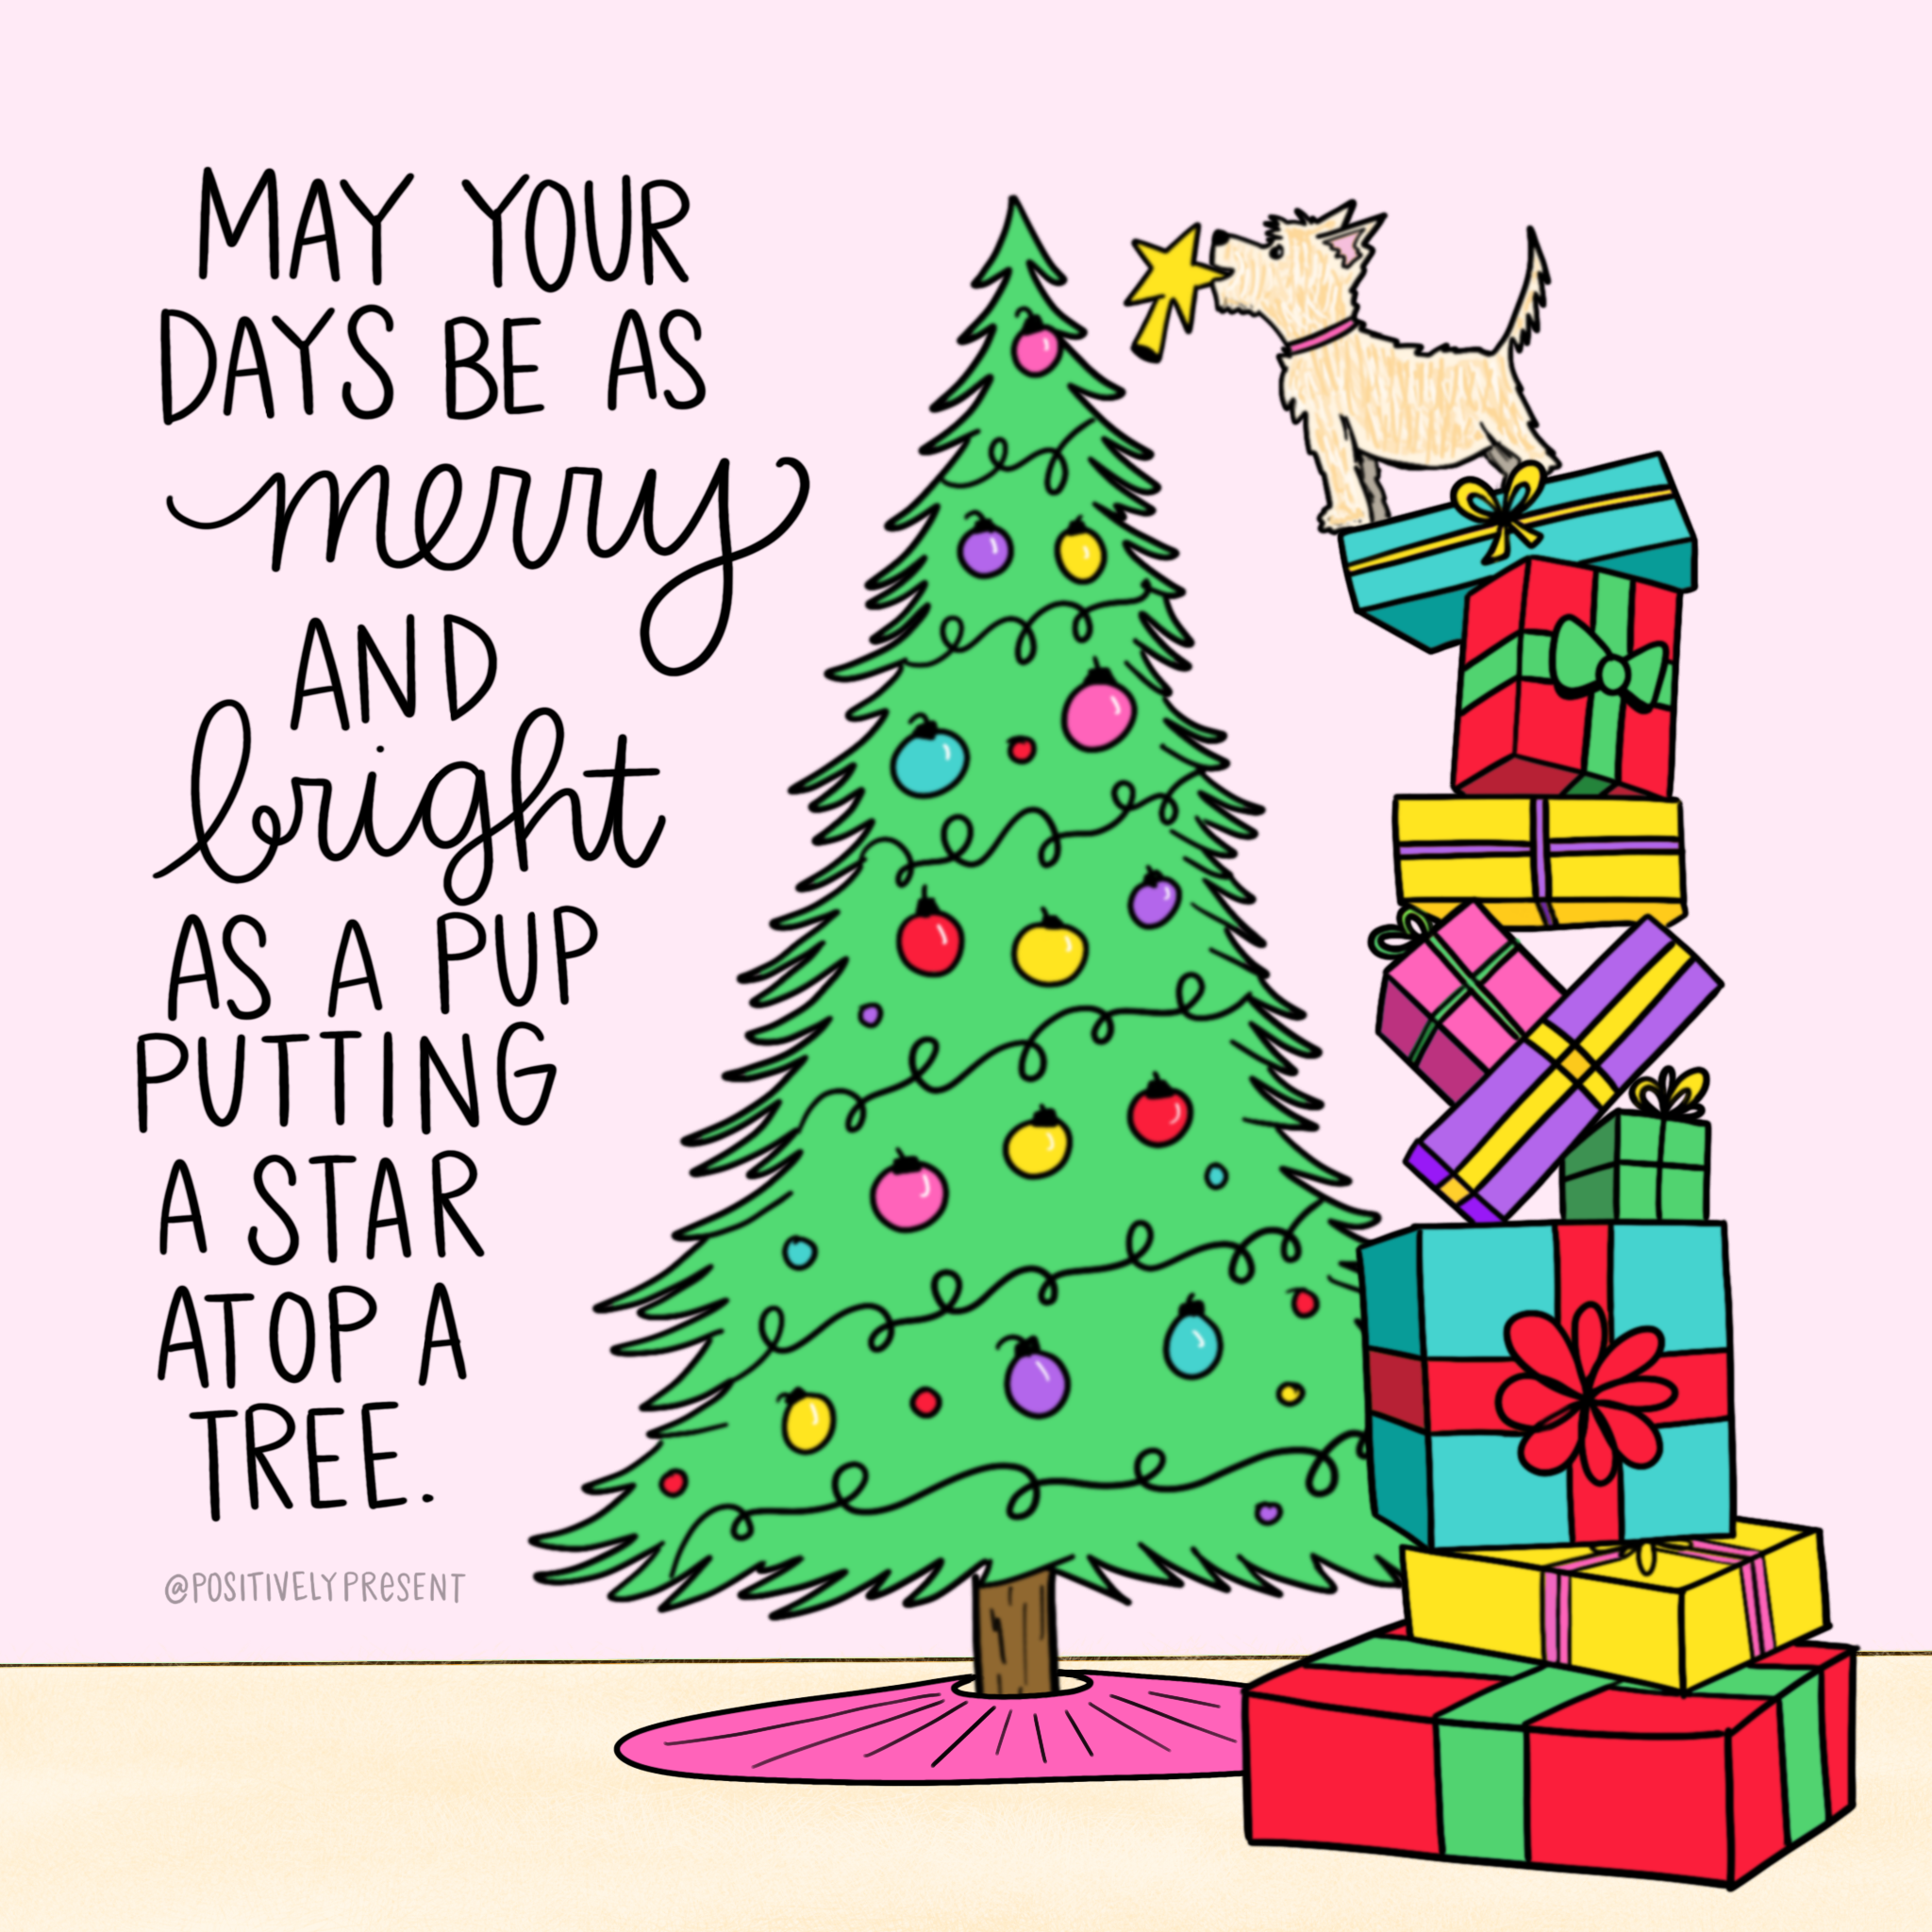 merry bright pup